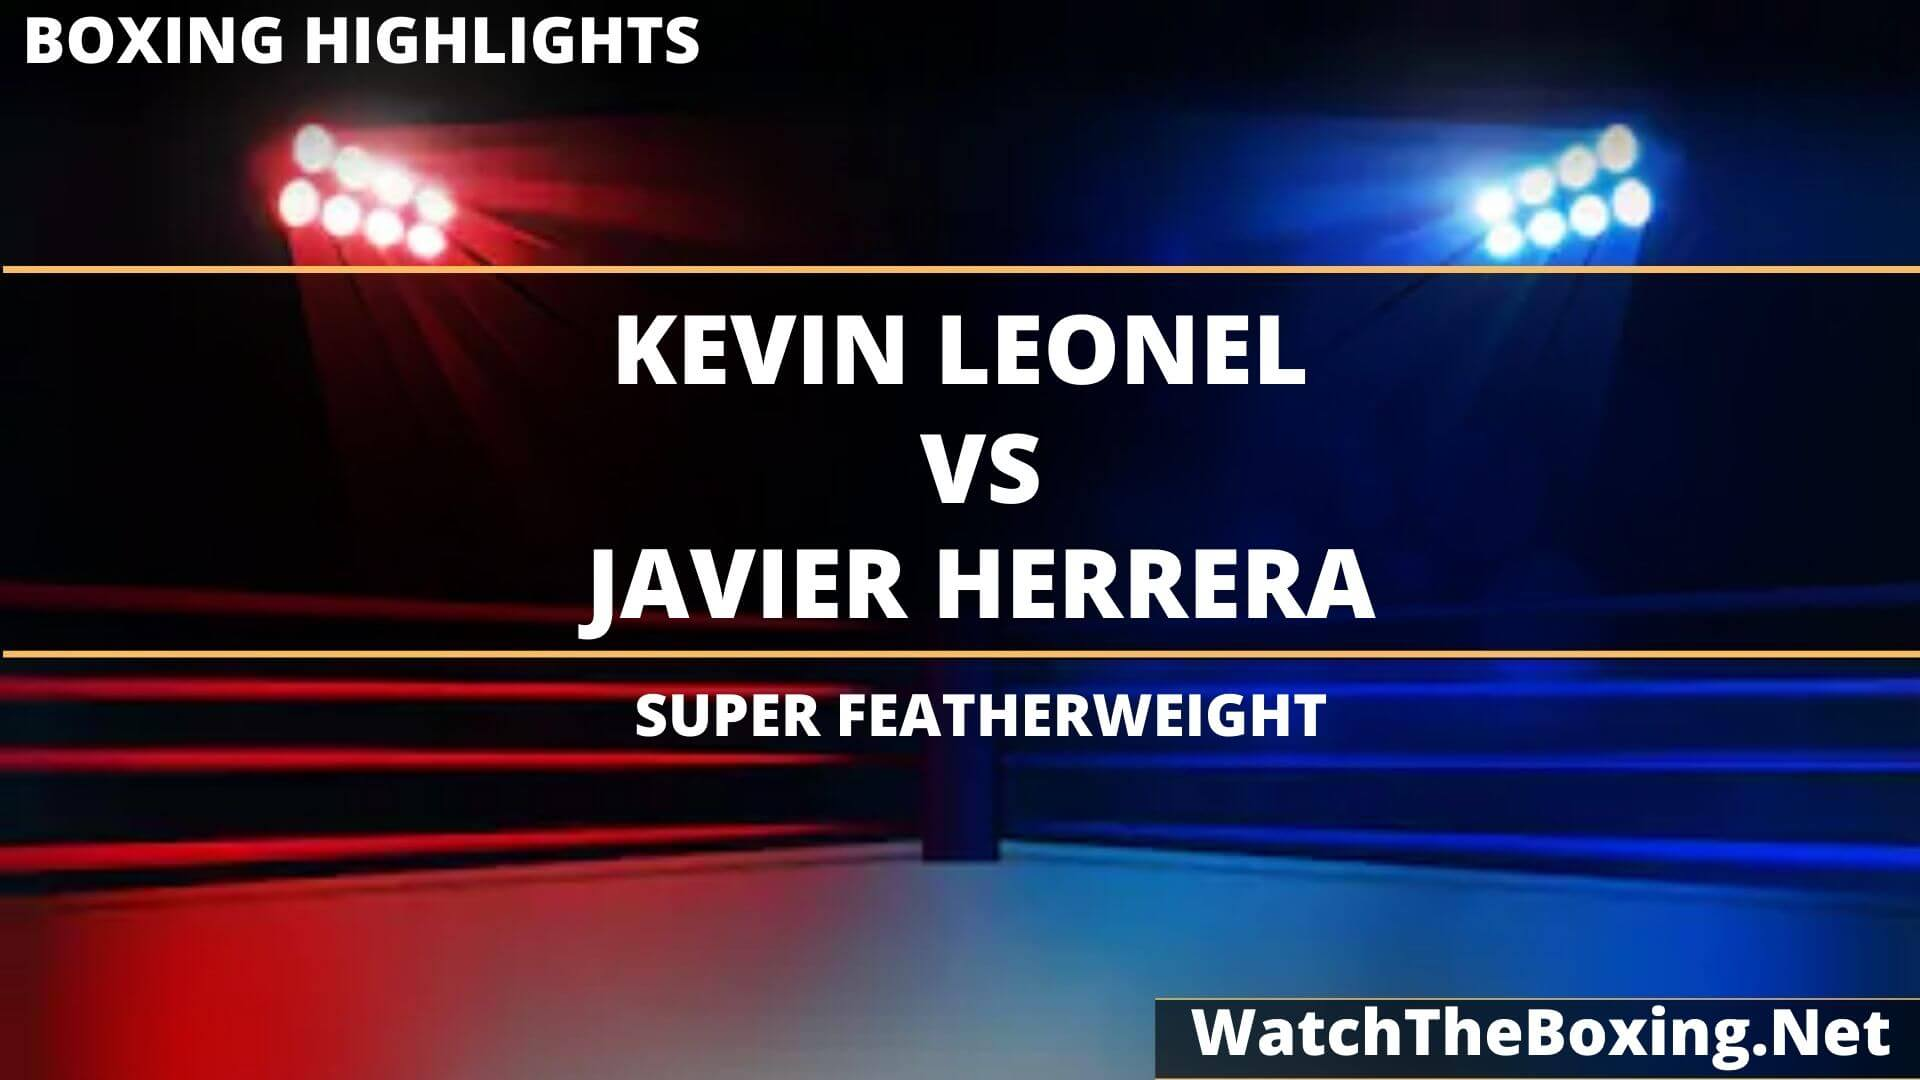 Kevin Leonel Vs Javier Herrera Highlights 2020 Super Featherweight